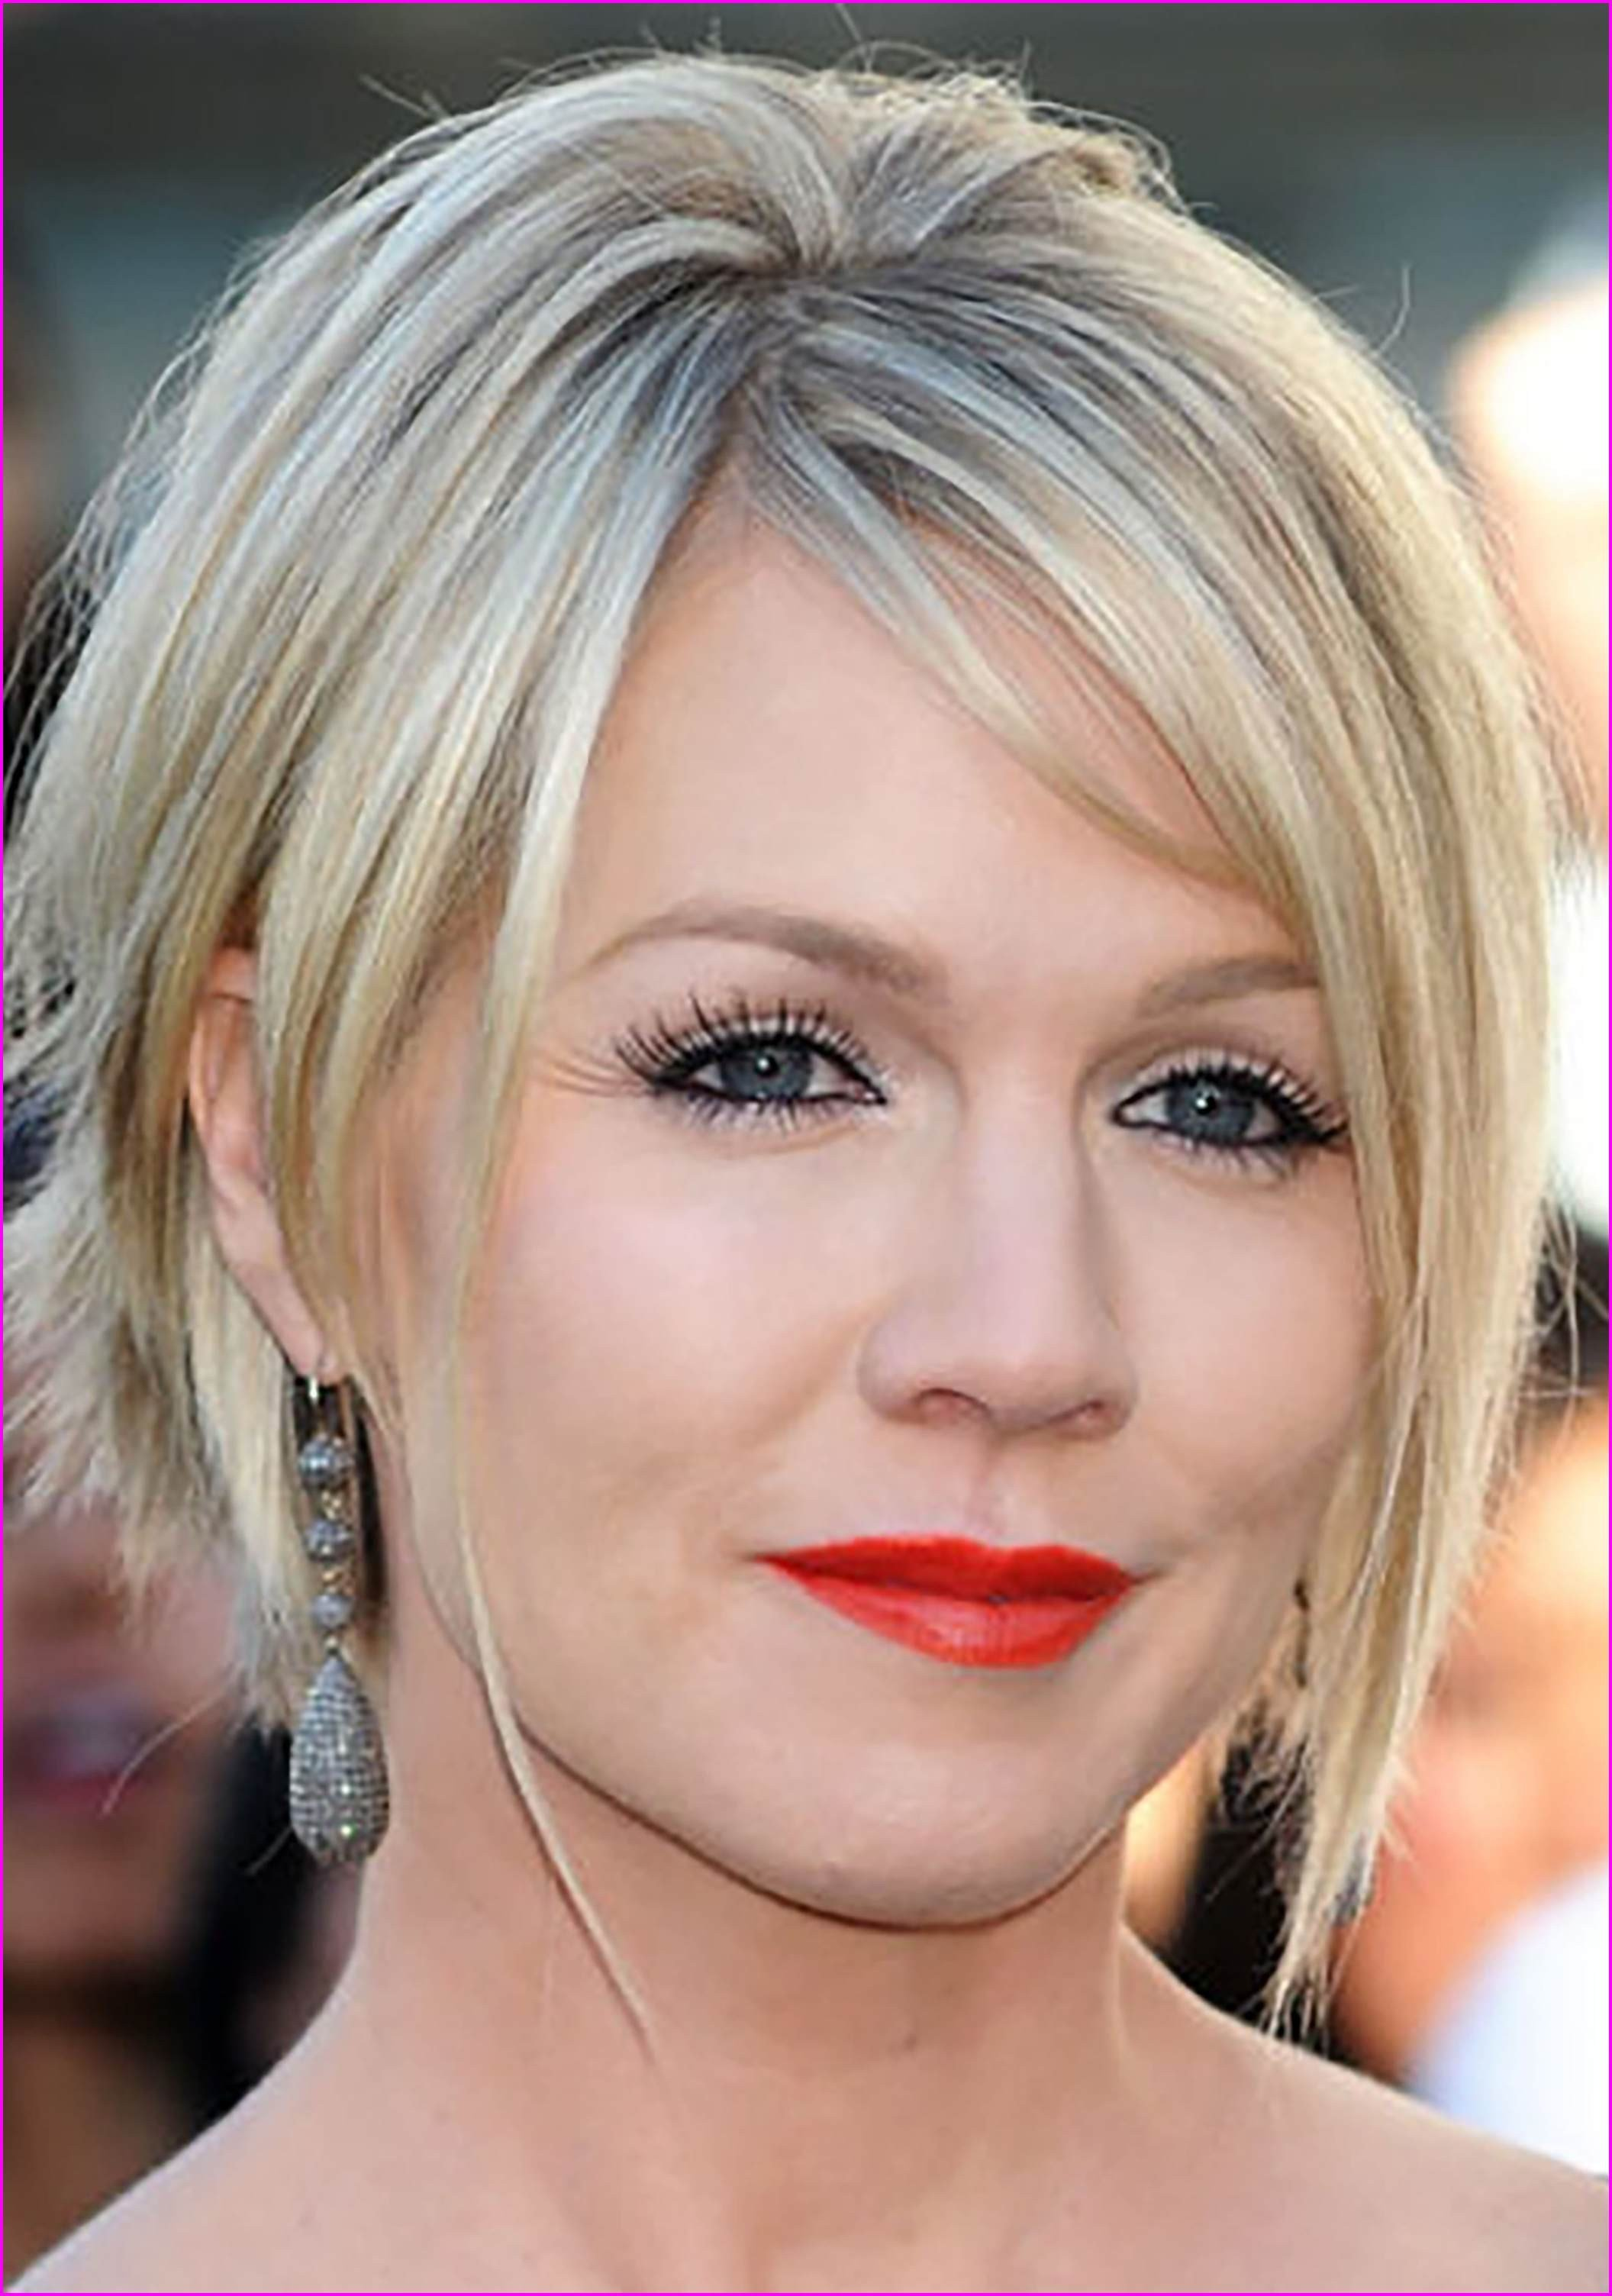 New Best Short Haircuts For Women 2019 Best Short Haircuts Ideas With Pictures